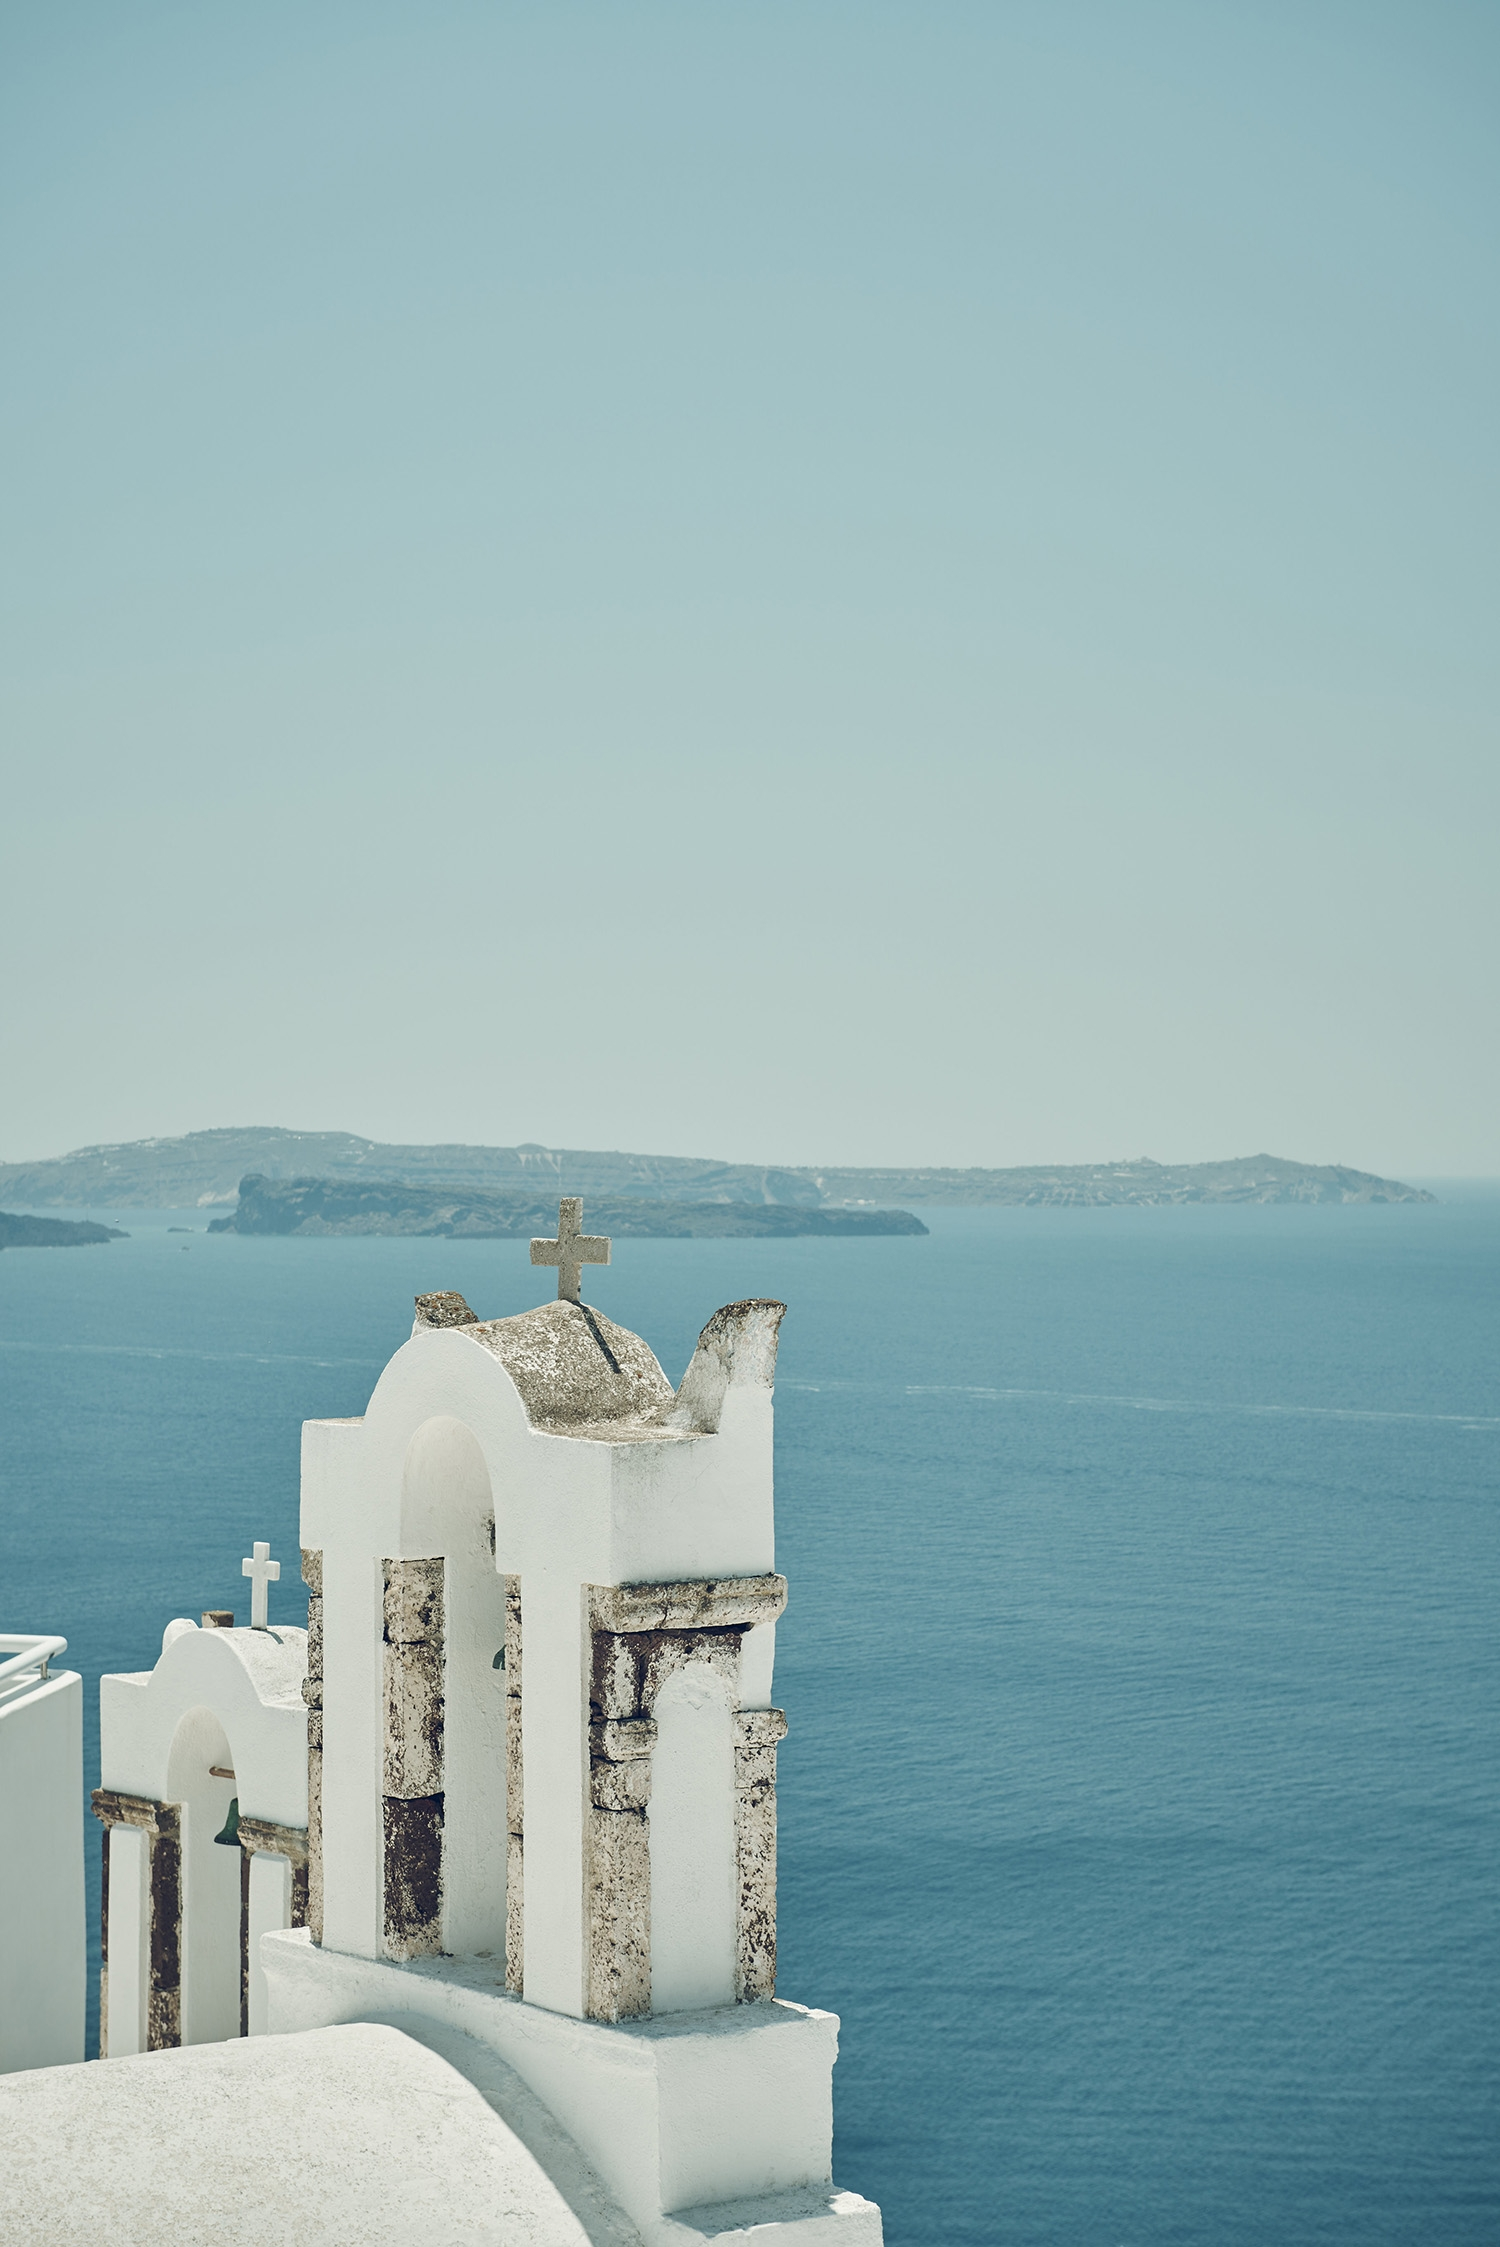 High on the mountain looking out at the roof of a chapel and the deep blue ocean